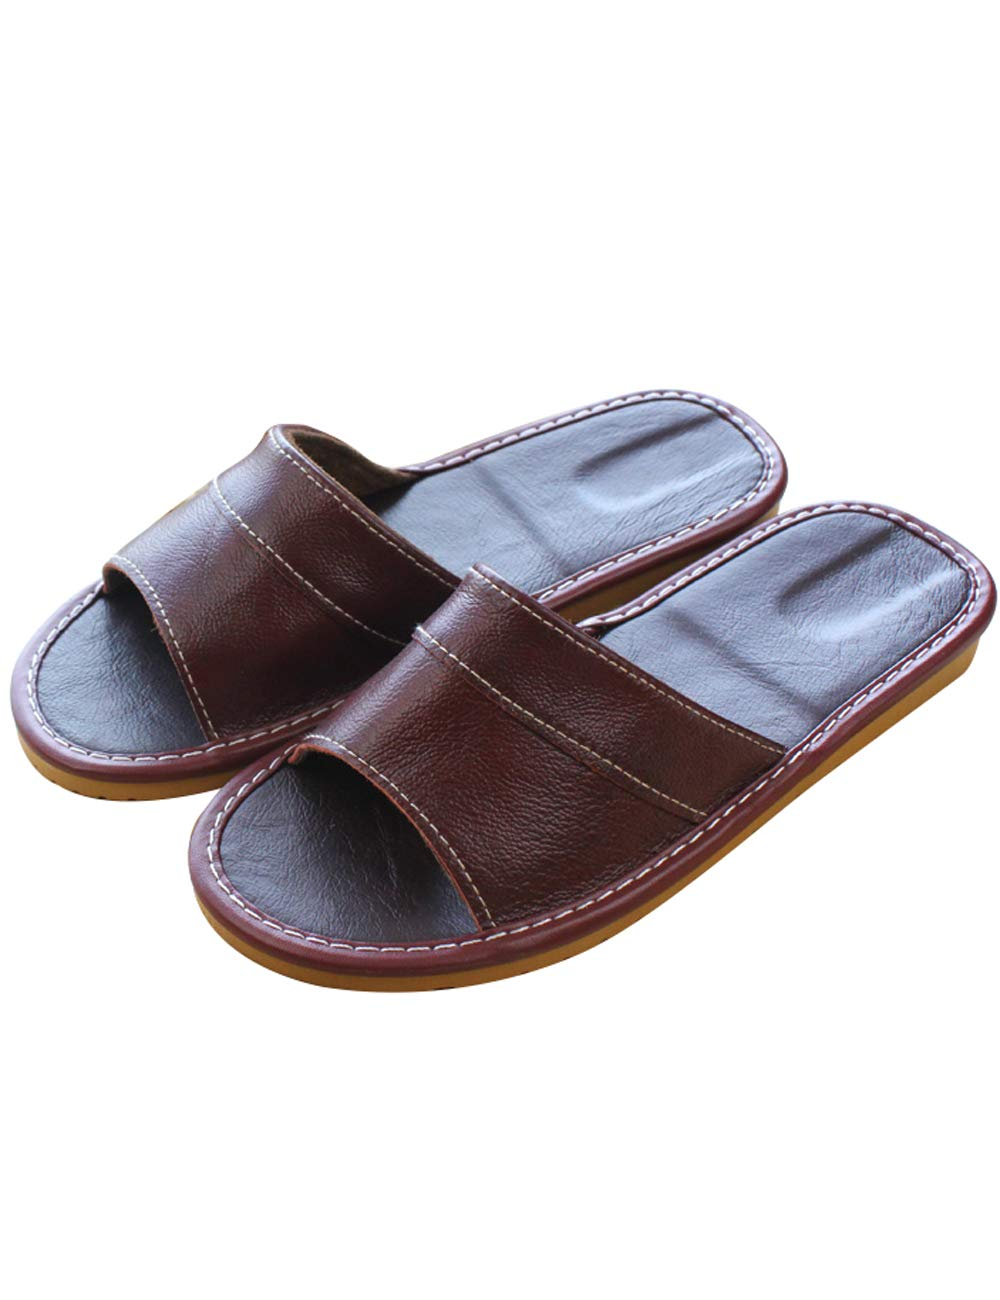 Zoulee Unisex Comfort House Indoor Slip On Leather Slippers Sweat-Absorbent Summer Slippers Dark Red US 4.5-5.5